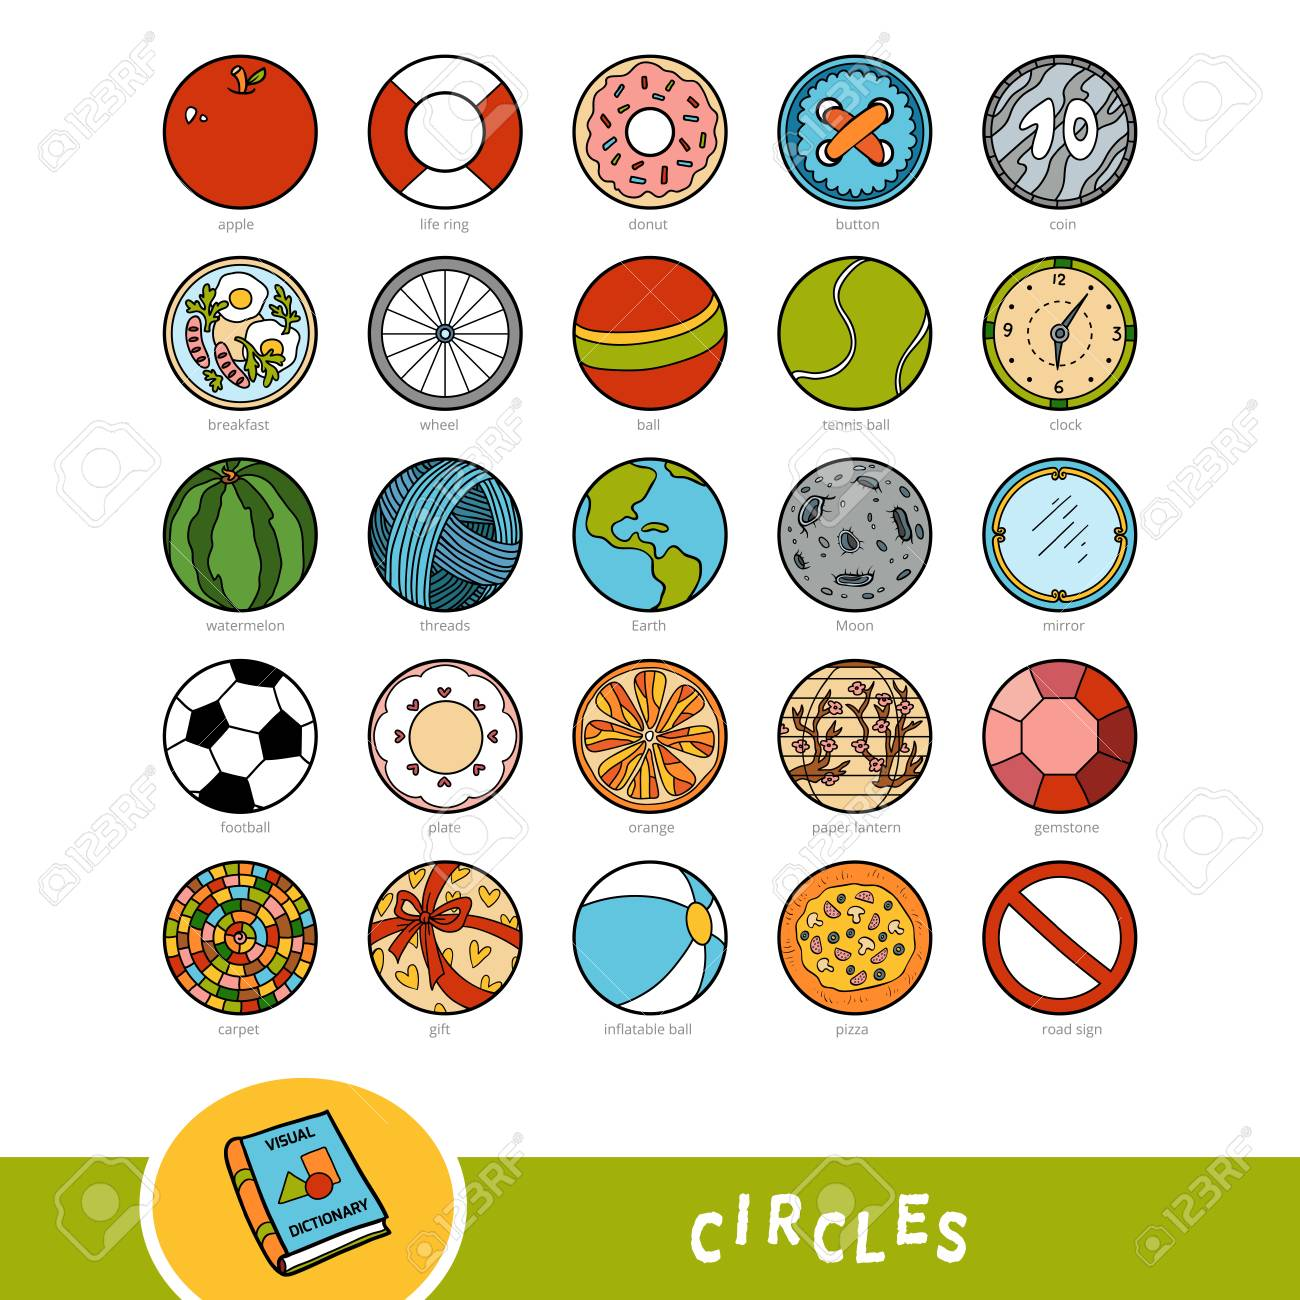 Colorful set of circle shape objects. Visual dictionary for children about geometric shapes. Education set for studying geometry. - 112342715